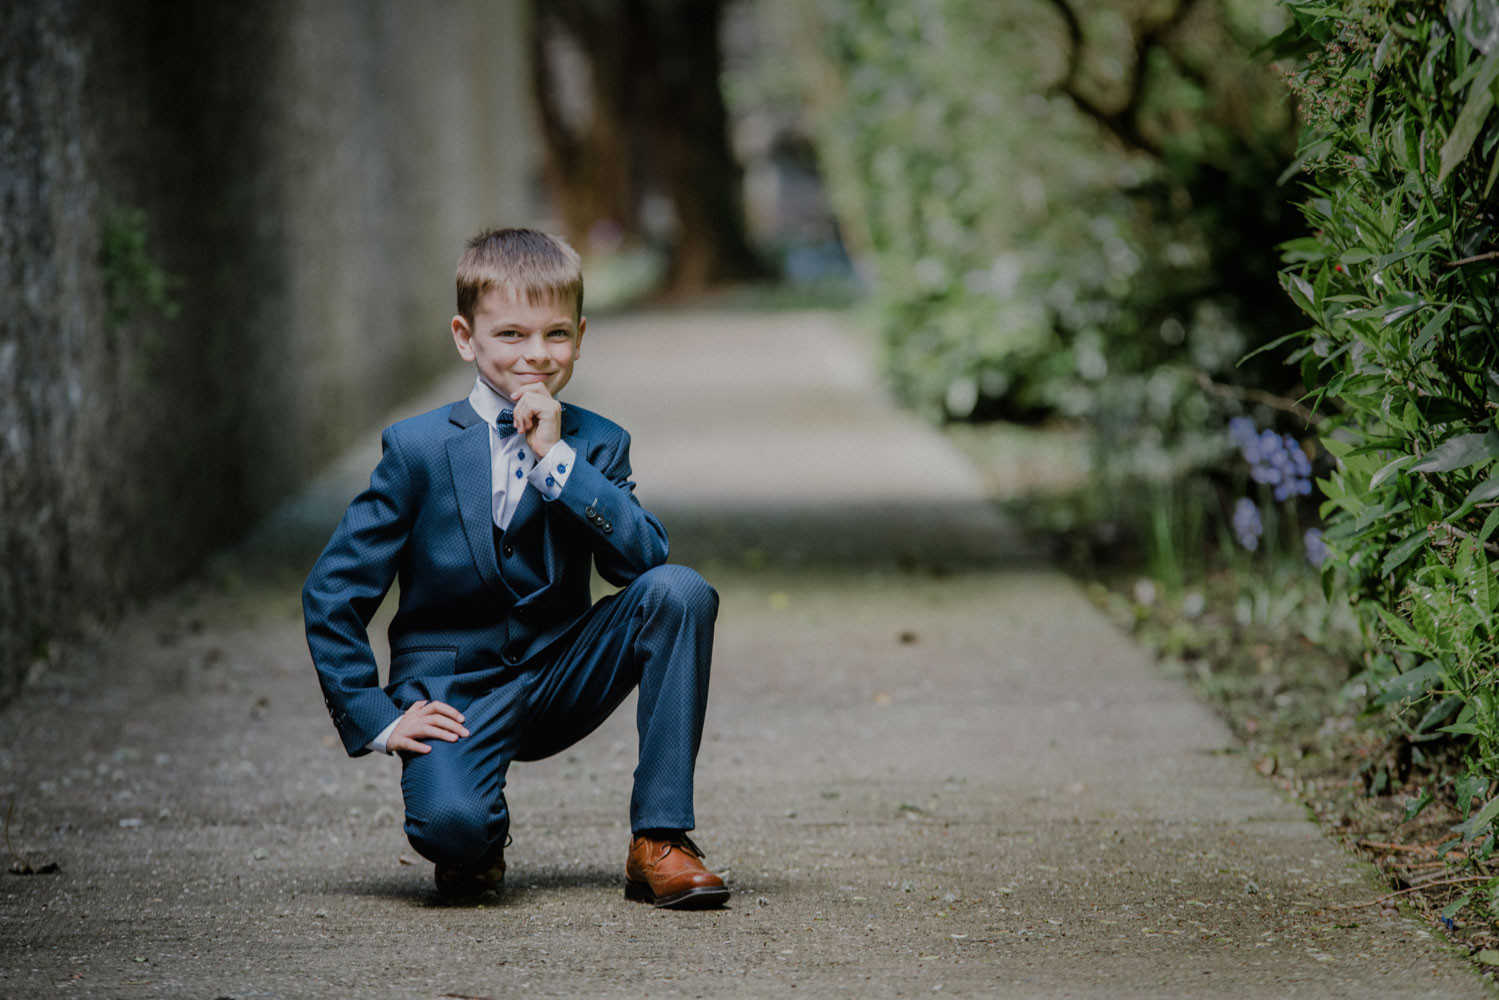 James and his Communion Day 05.05.18